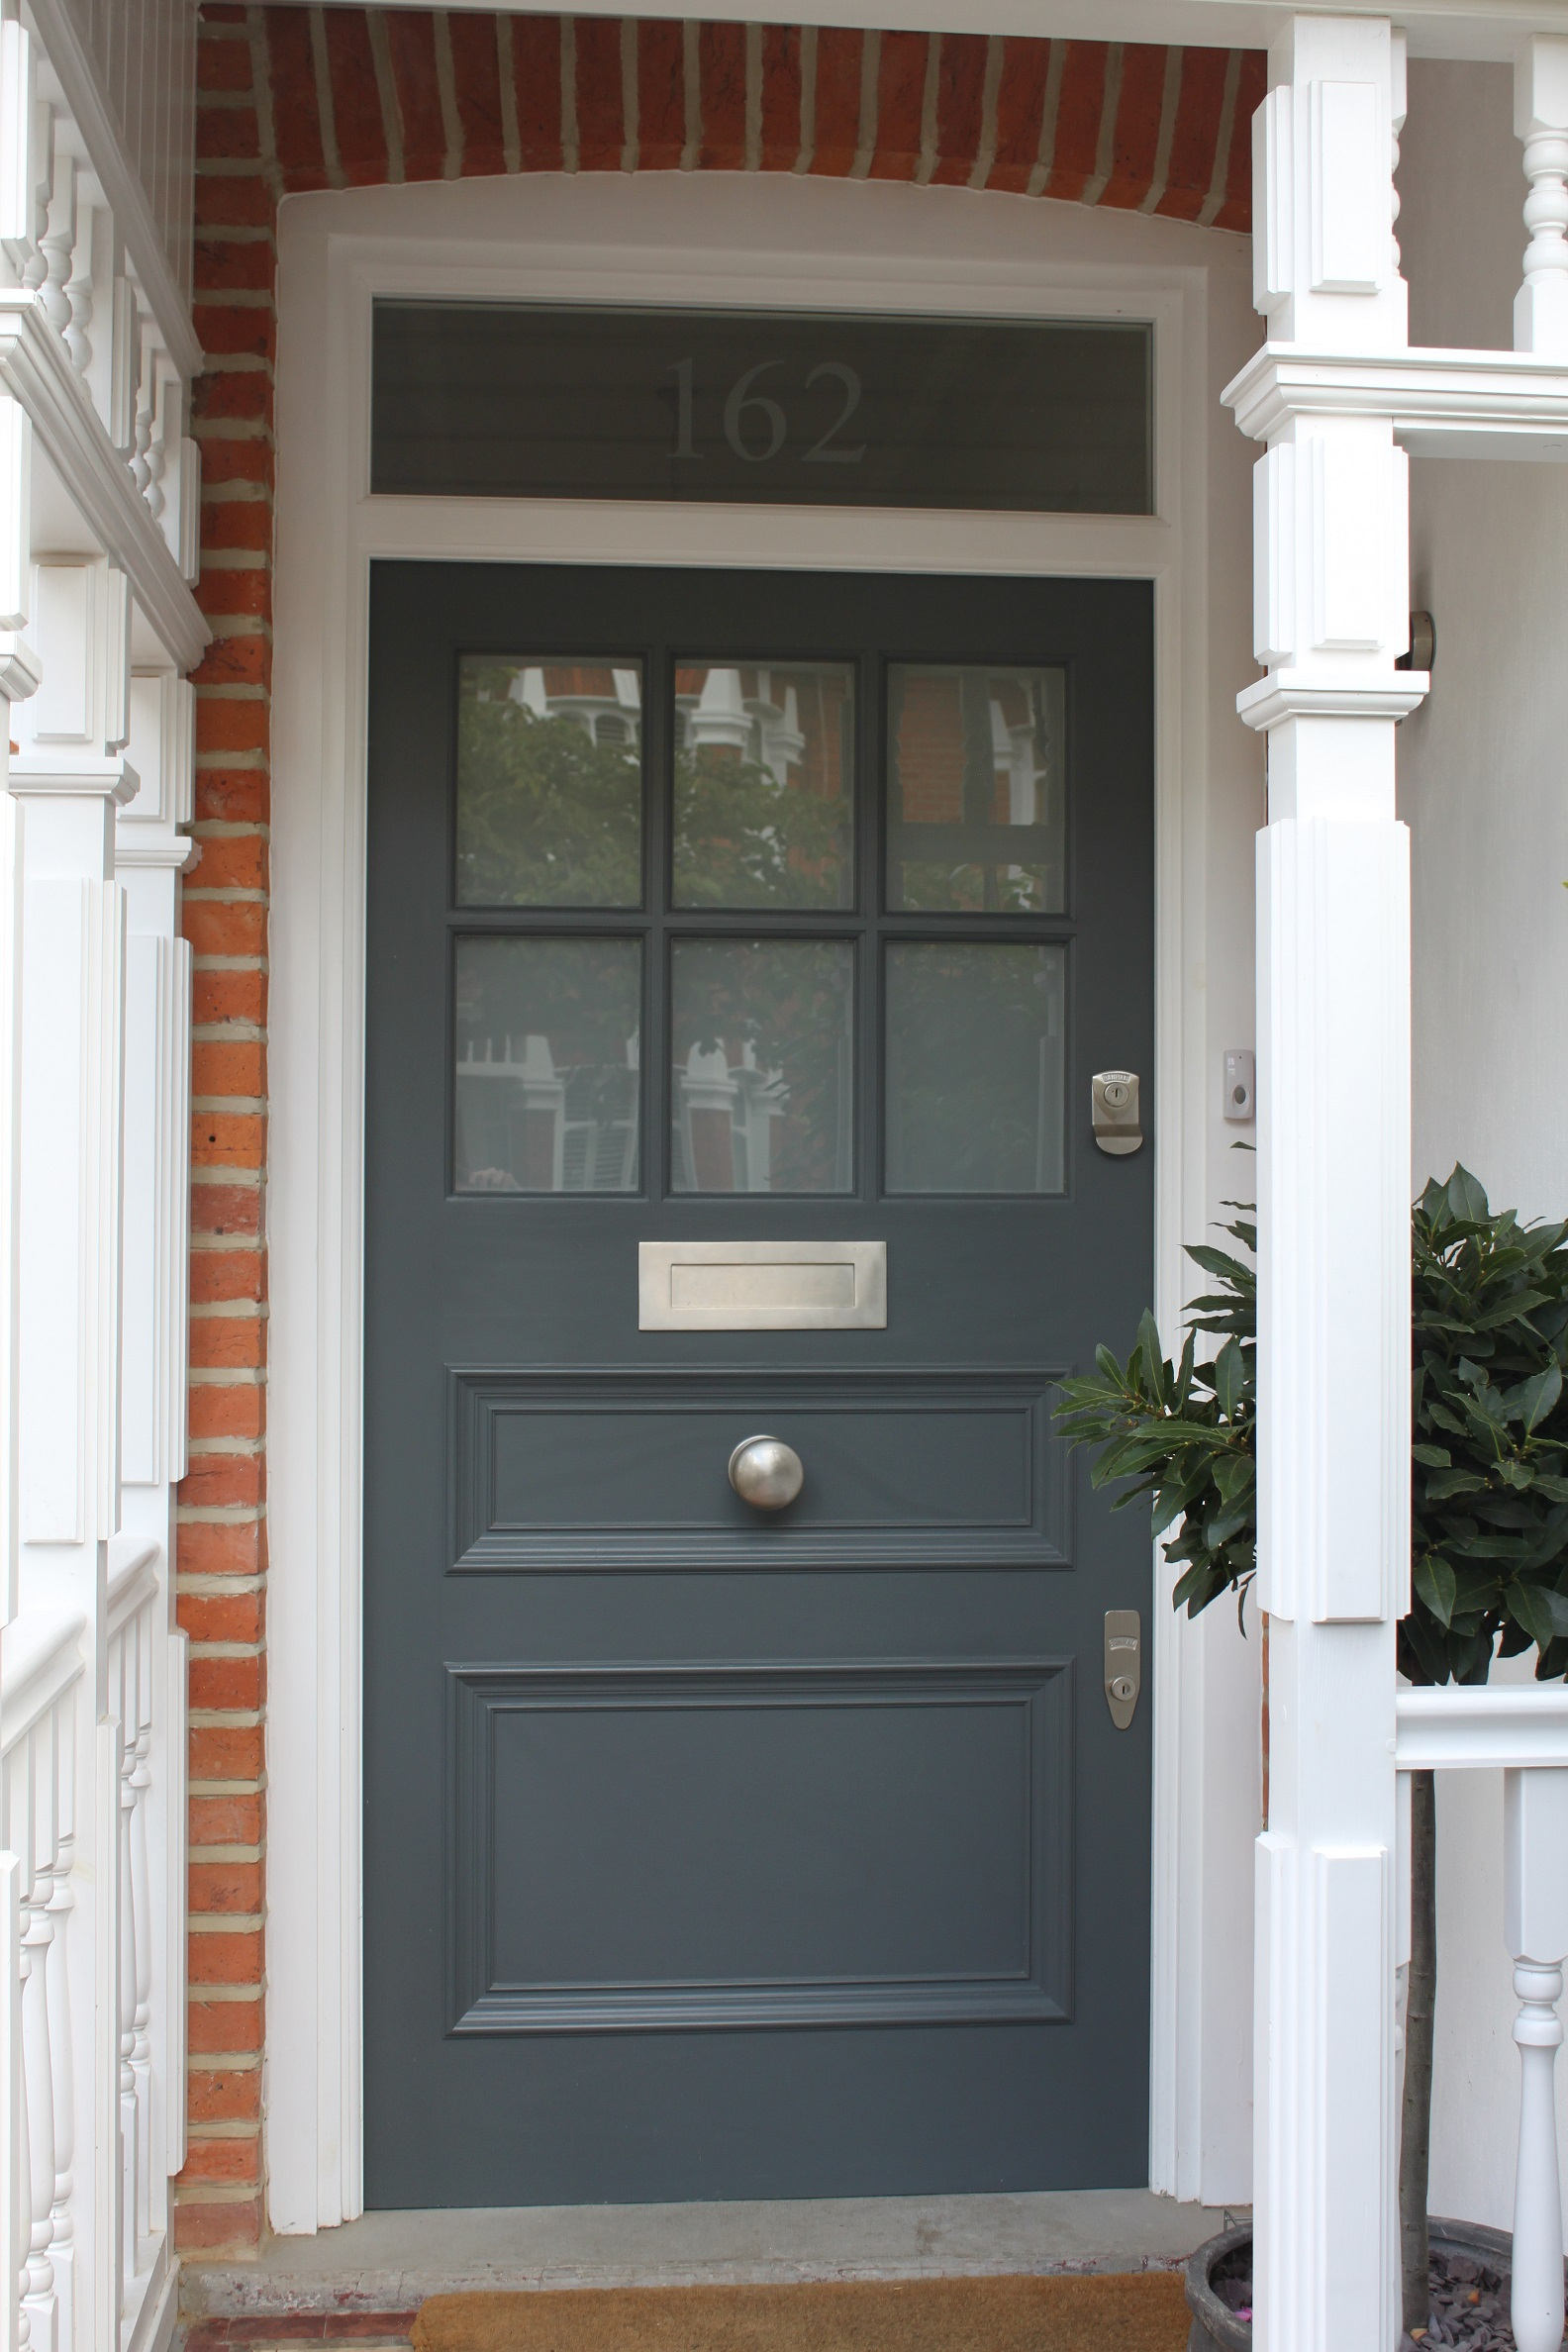 Edwardian front doors voysey jones for Front entry doors with glass